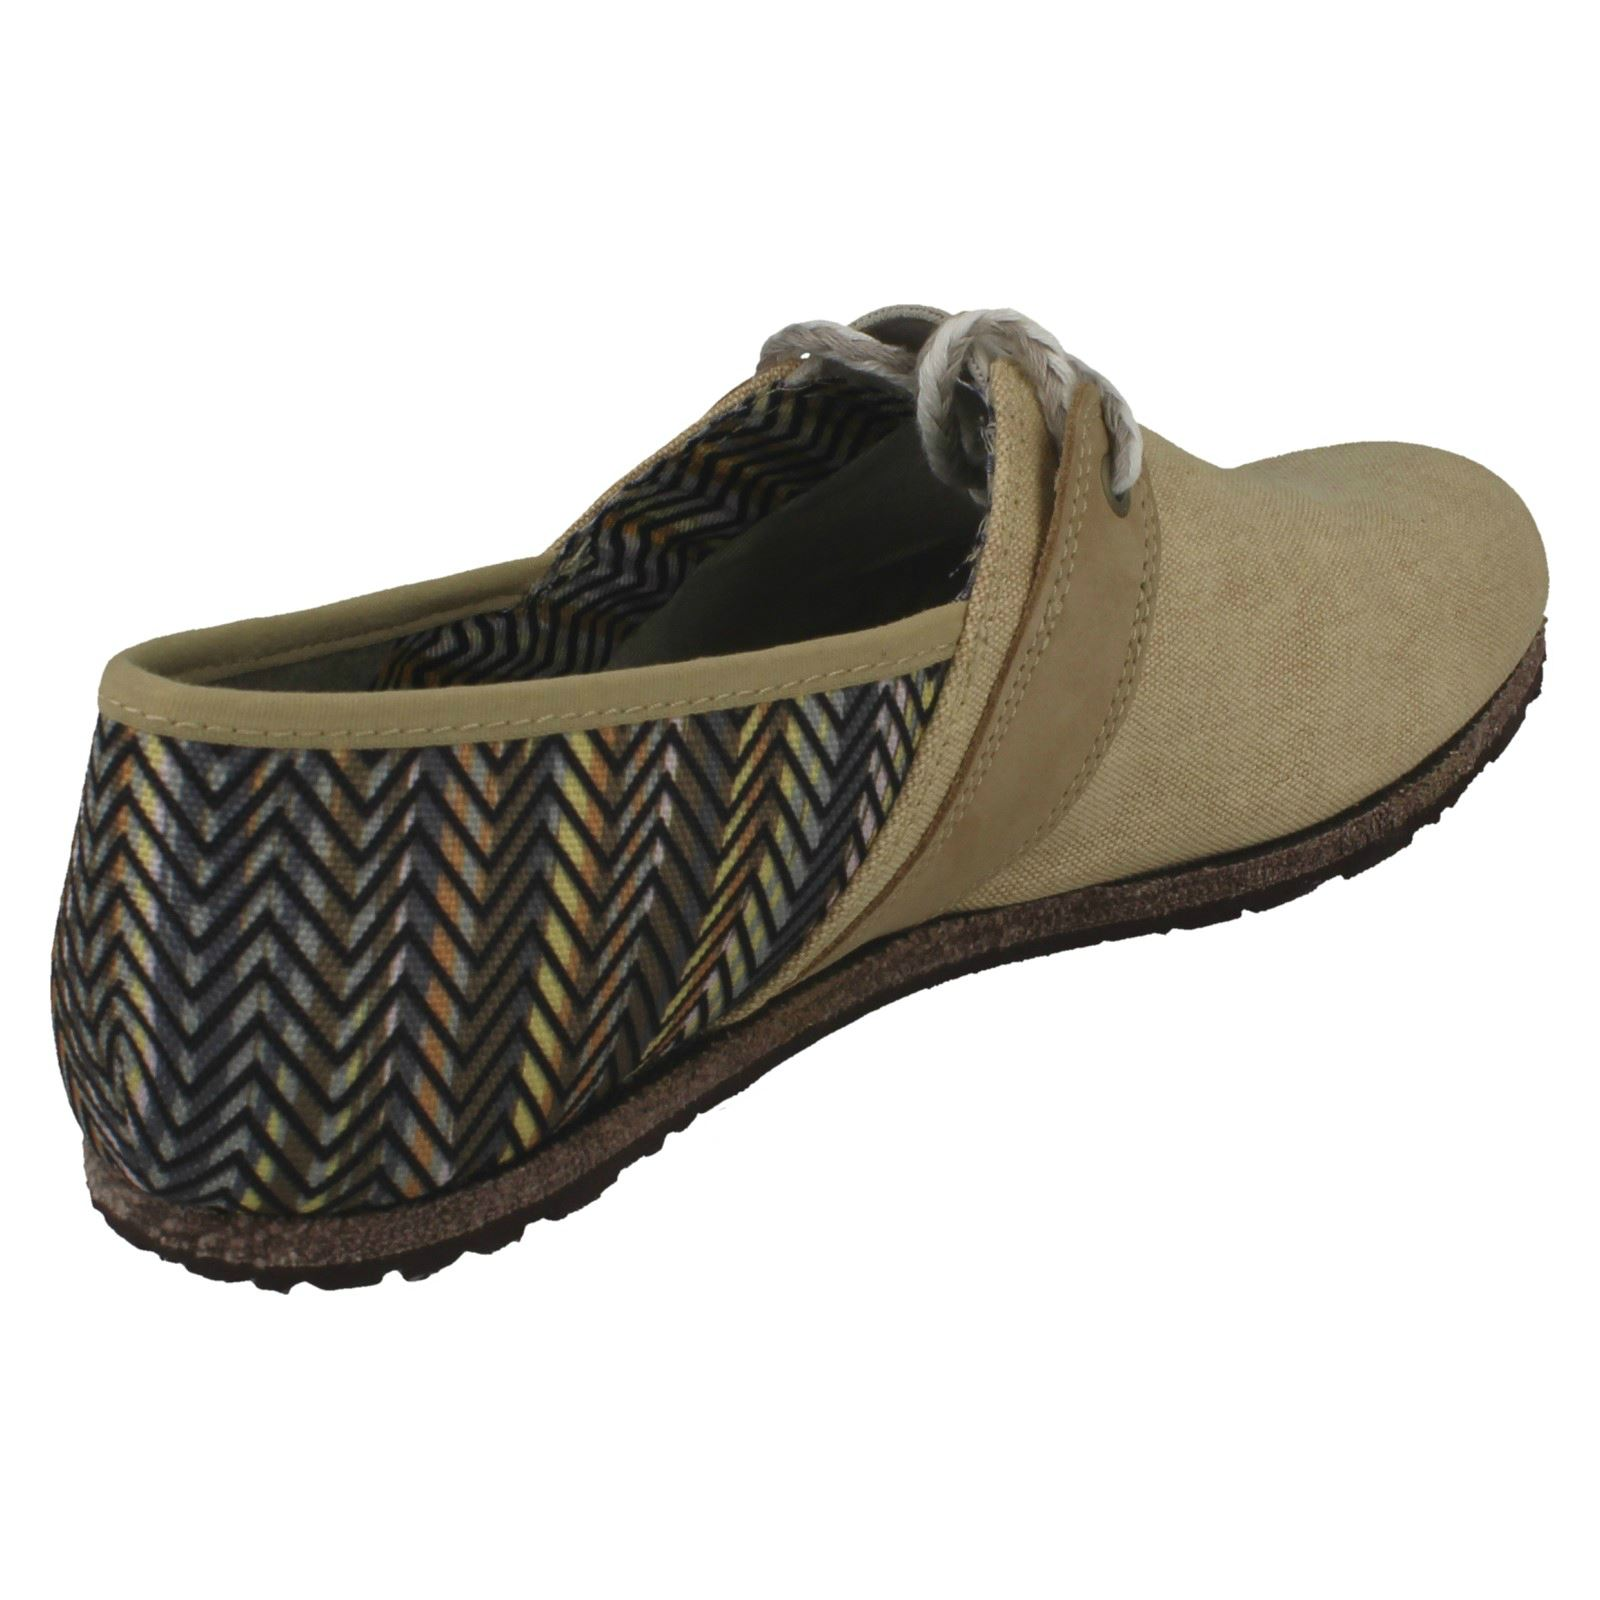 Ladies-Merrell-Casual-Flat-Shoes-039-Artemisia-039 thumbnail 5